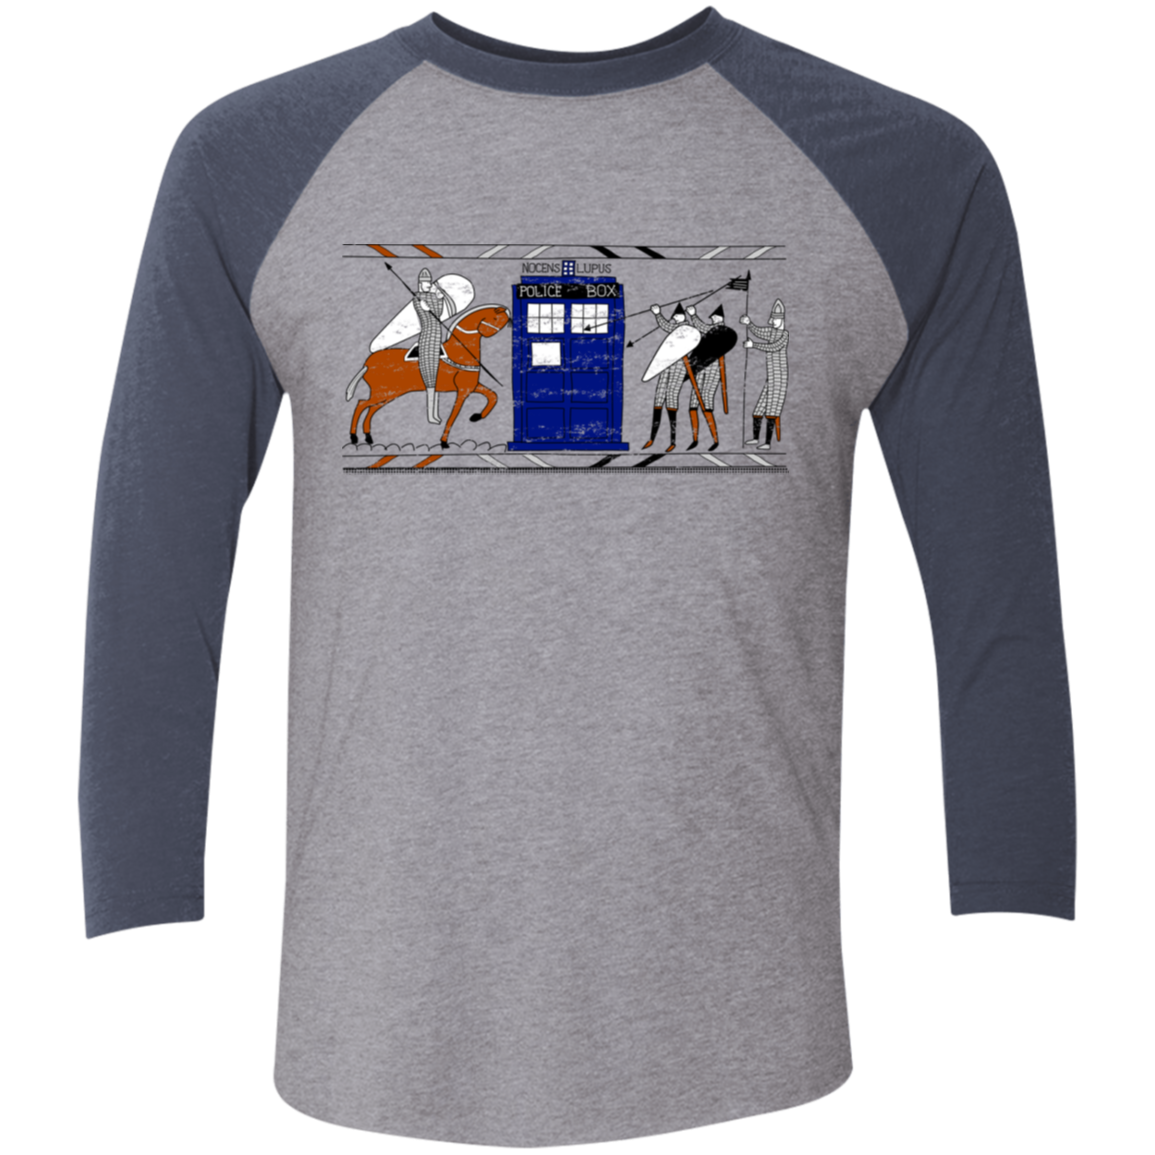 Nocens Lupus Tardis in the Bayeux Tapestry Men's Triblend 3/4 Sleeve